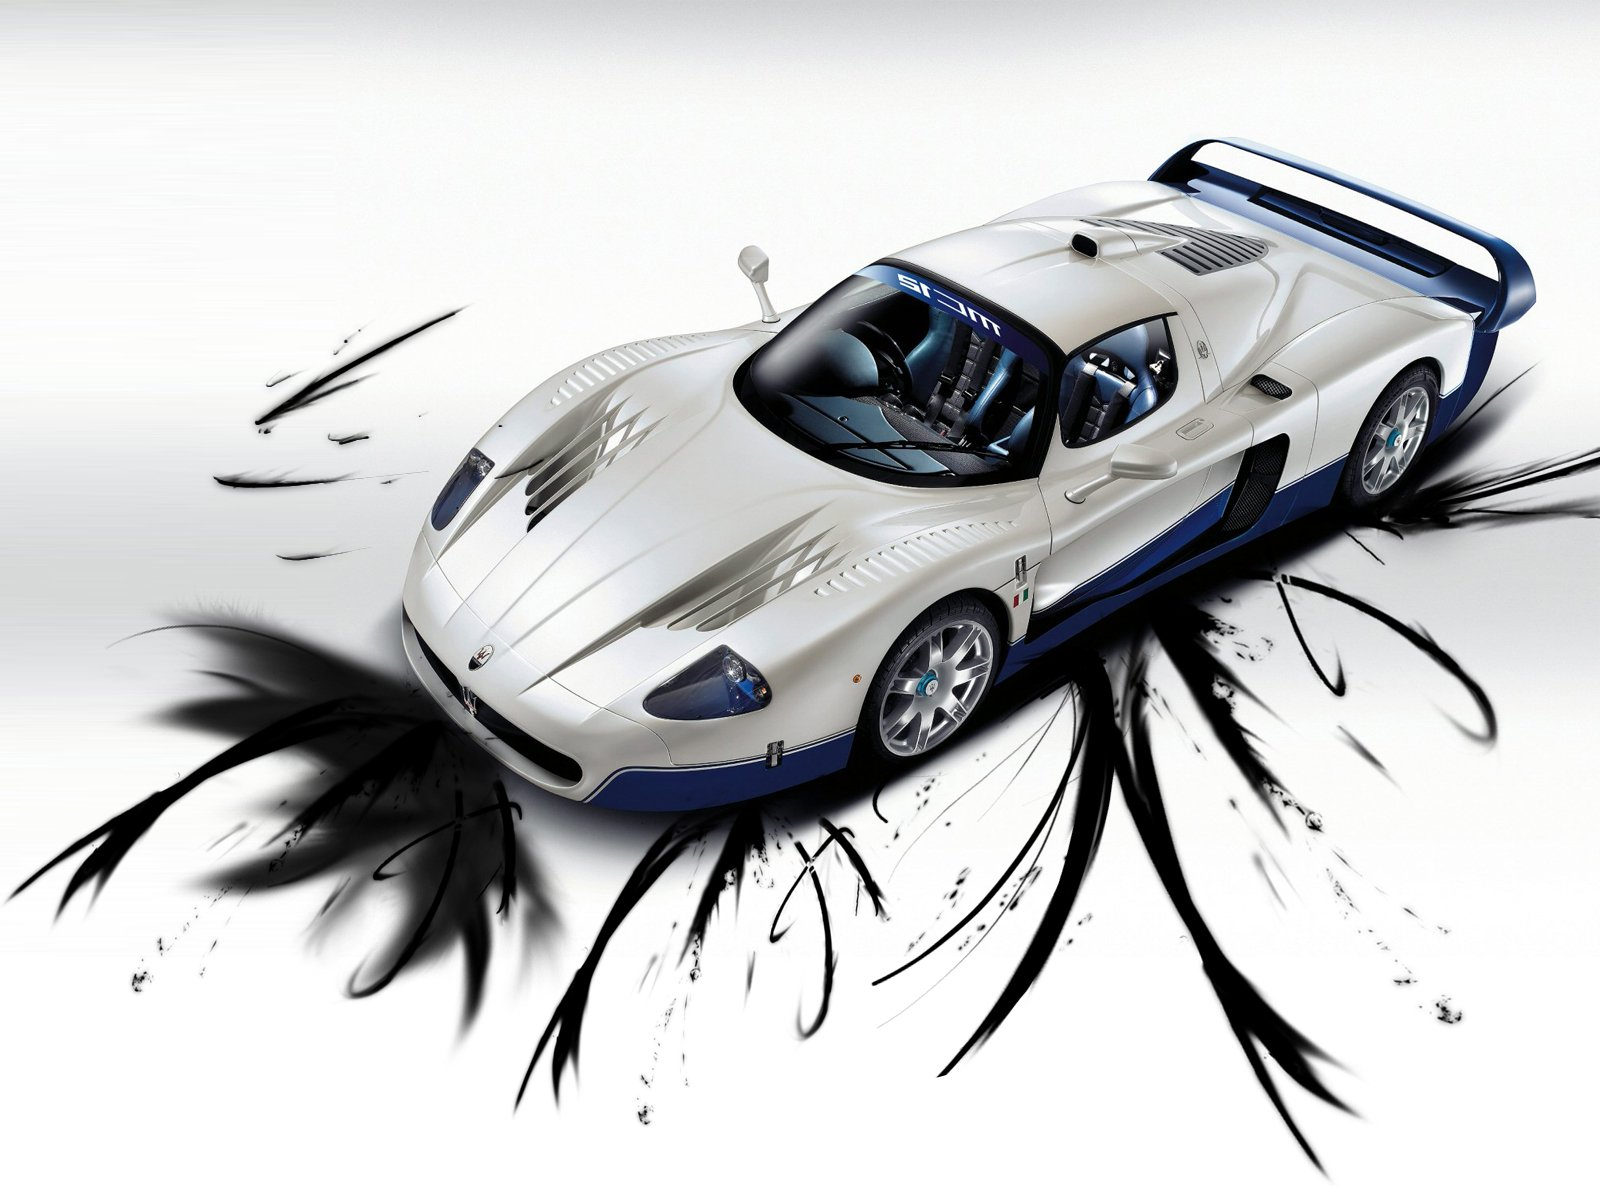 cool cars wallpapers hd cool cars pictures hd cool cars images hd cool 1600x1200